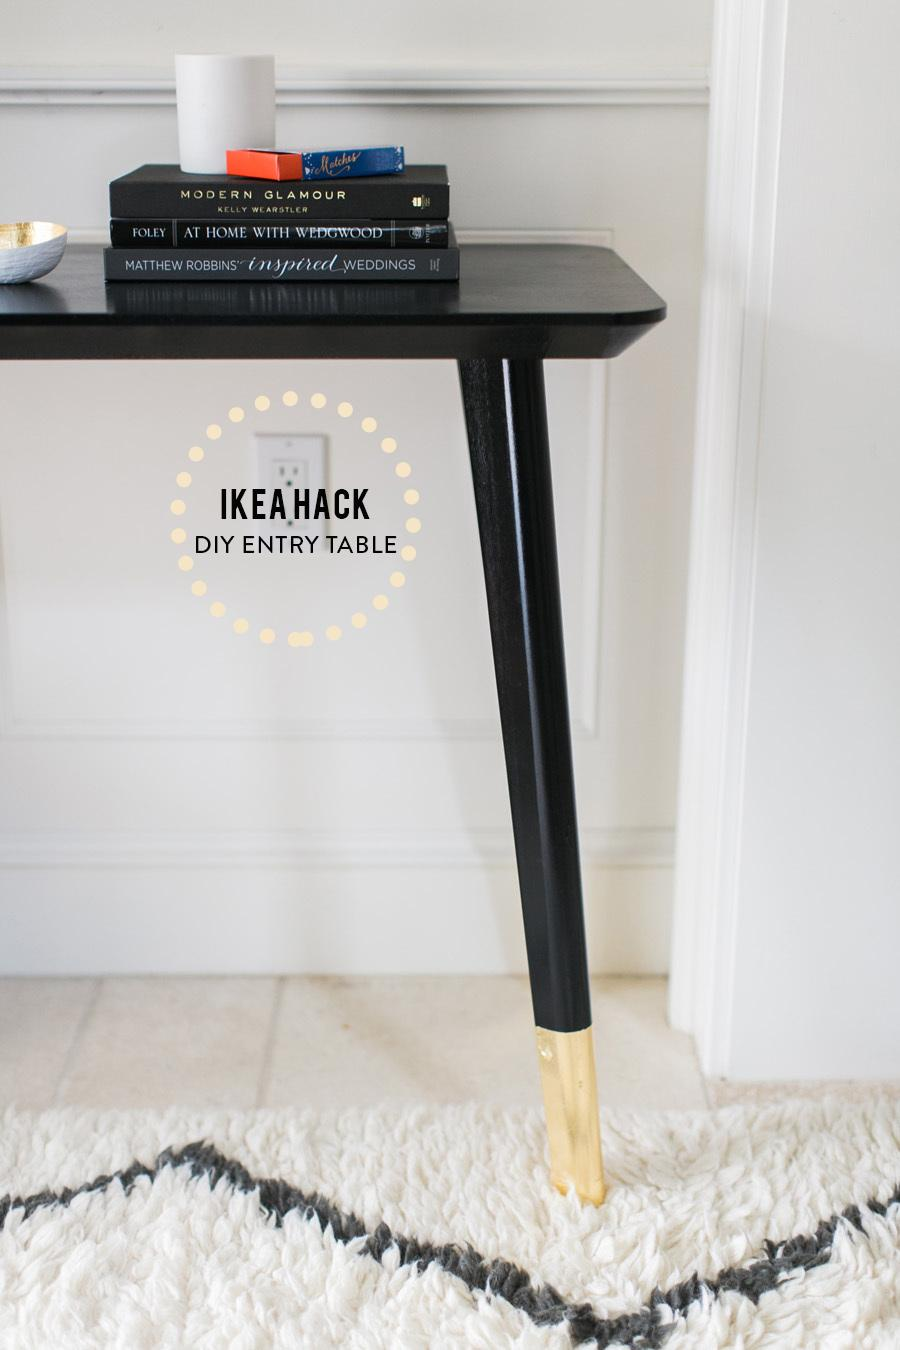 Ikea Hack Diy Entry Table